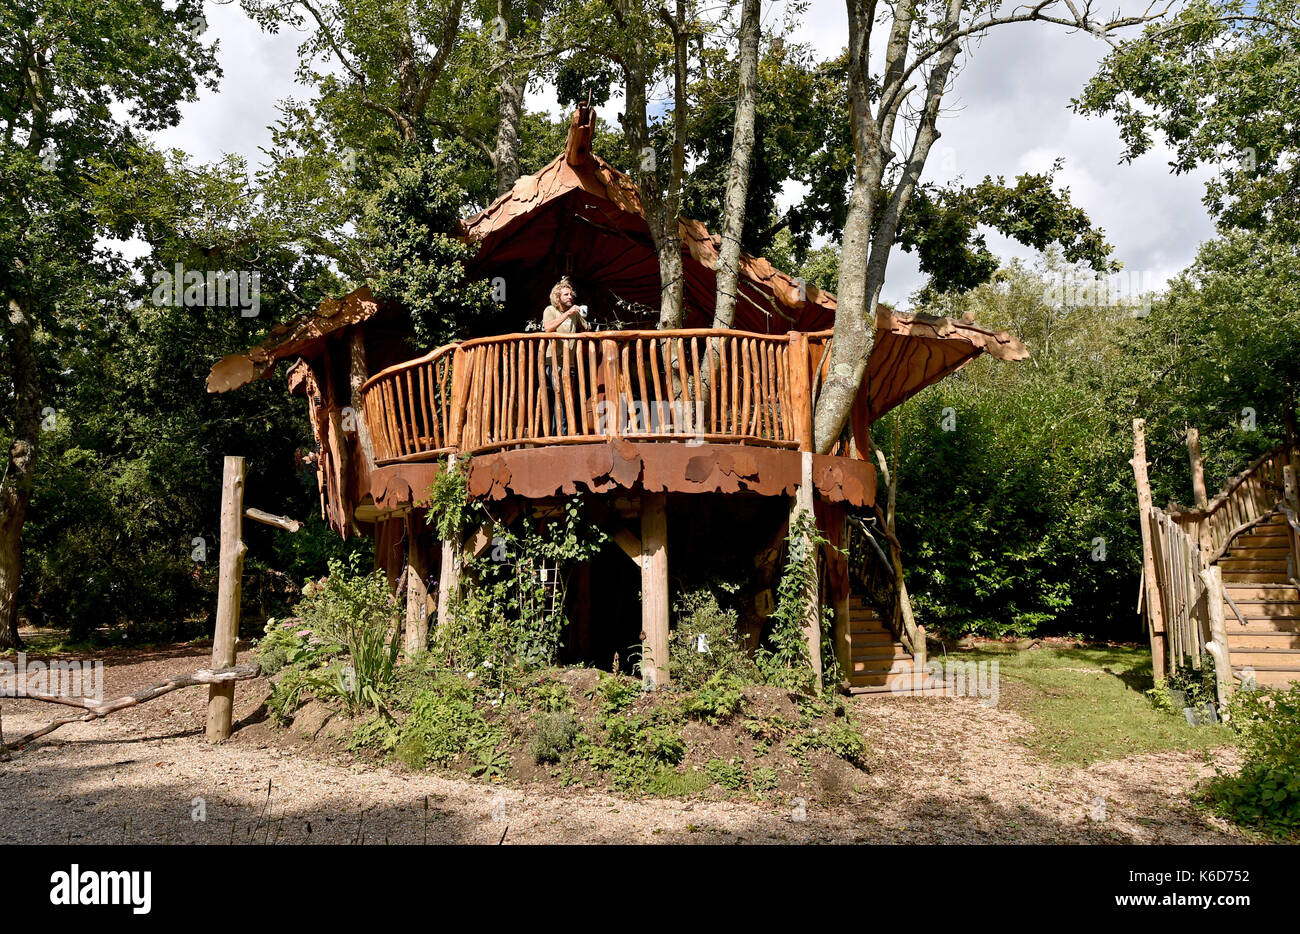 Ditchling Sussex, UK. 12th Sep, 2017. A new tree house has been unveiled at Blackberry Wood campsite near Ditchling in Sussex . The new upmarket tree house called Piggledy has been built by campsite owner Tim Johnson (pictured) and is larger than the original next door tree house called Higgledy . Credit: Simon Dack/Alamy Live News - Stock Image